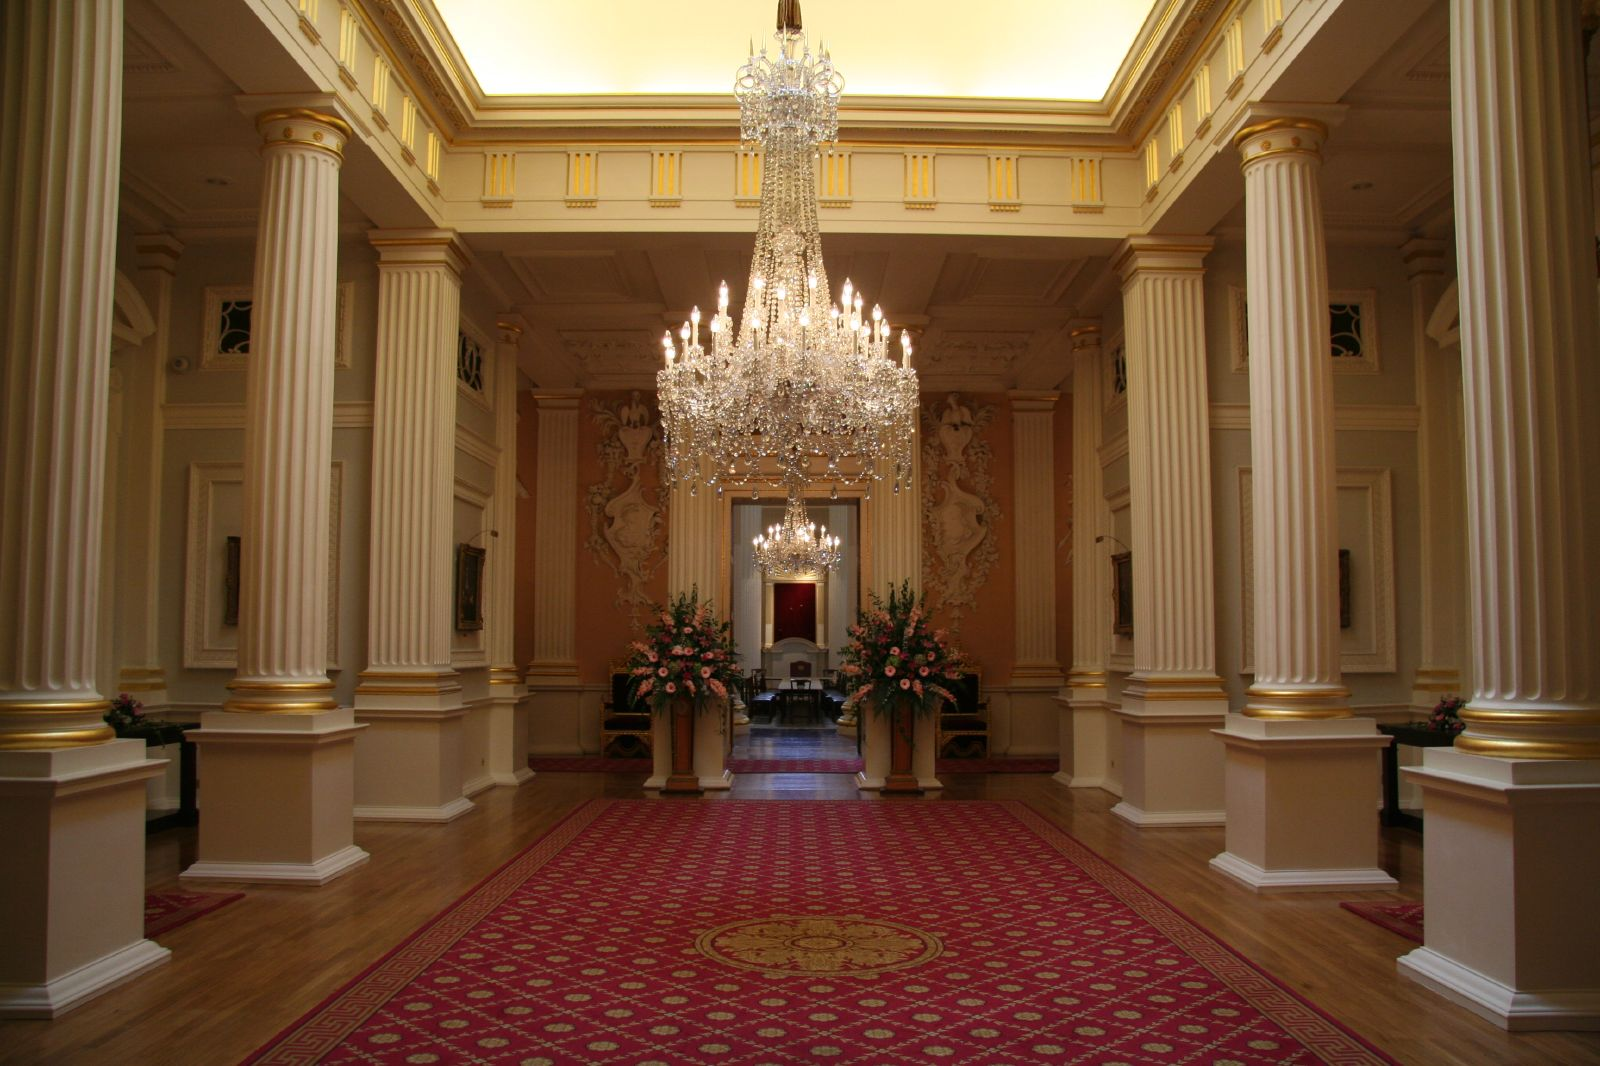 File mansion house interior 1398377700 jpg wikimedia commons - Inside house ...